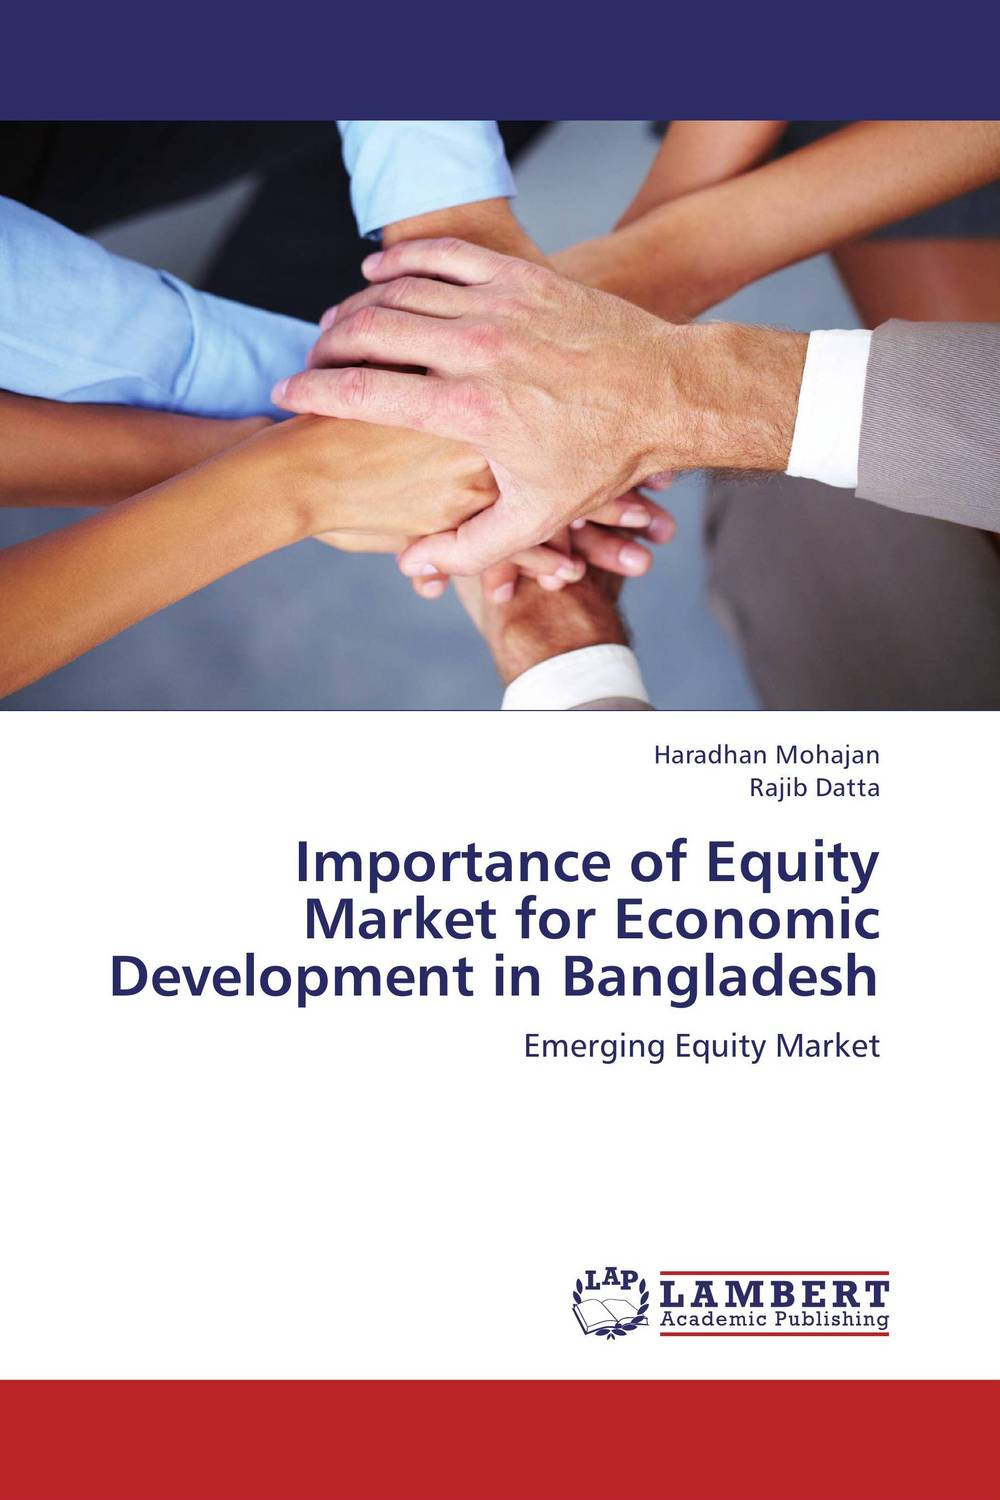 Importance of Equity Market for Economic Development in Bangladesh christian szylar handbook of market risk